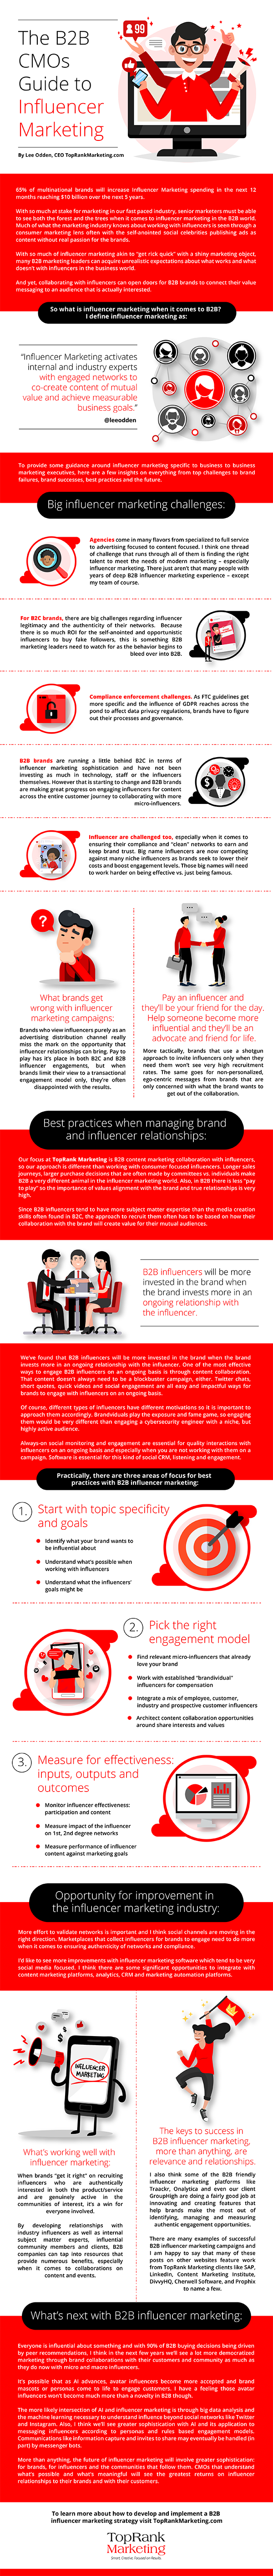 Infographic looks at influencer marketing trends for B2B brands